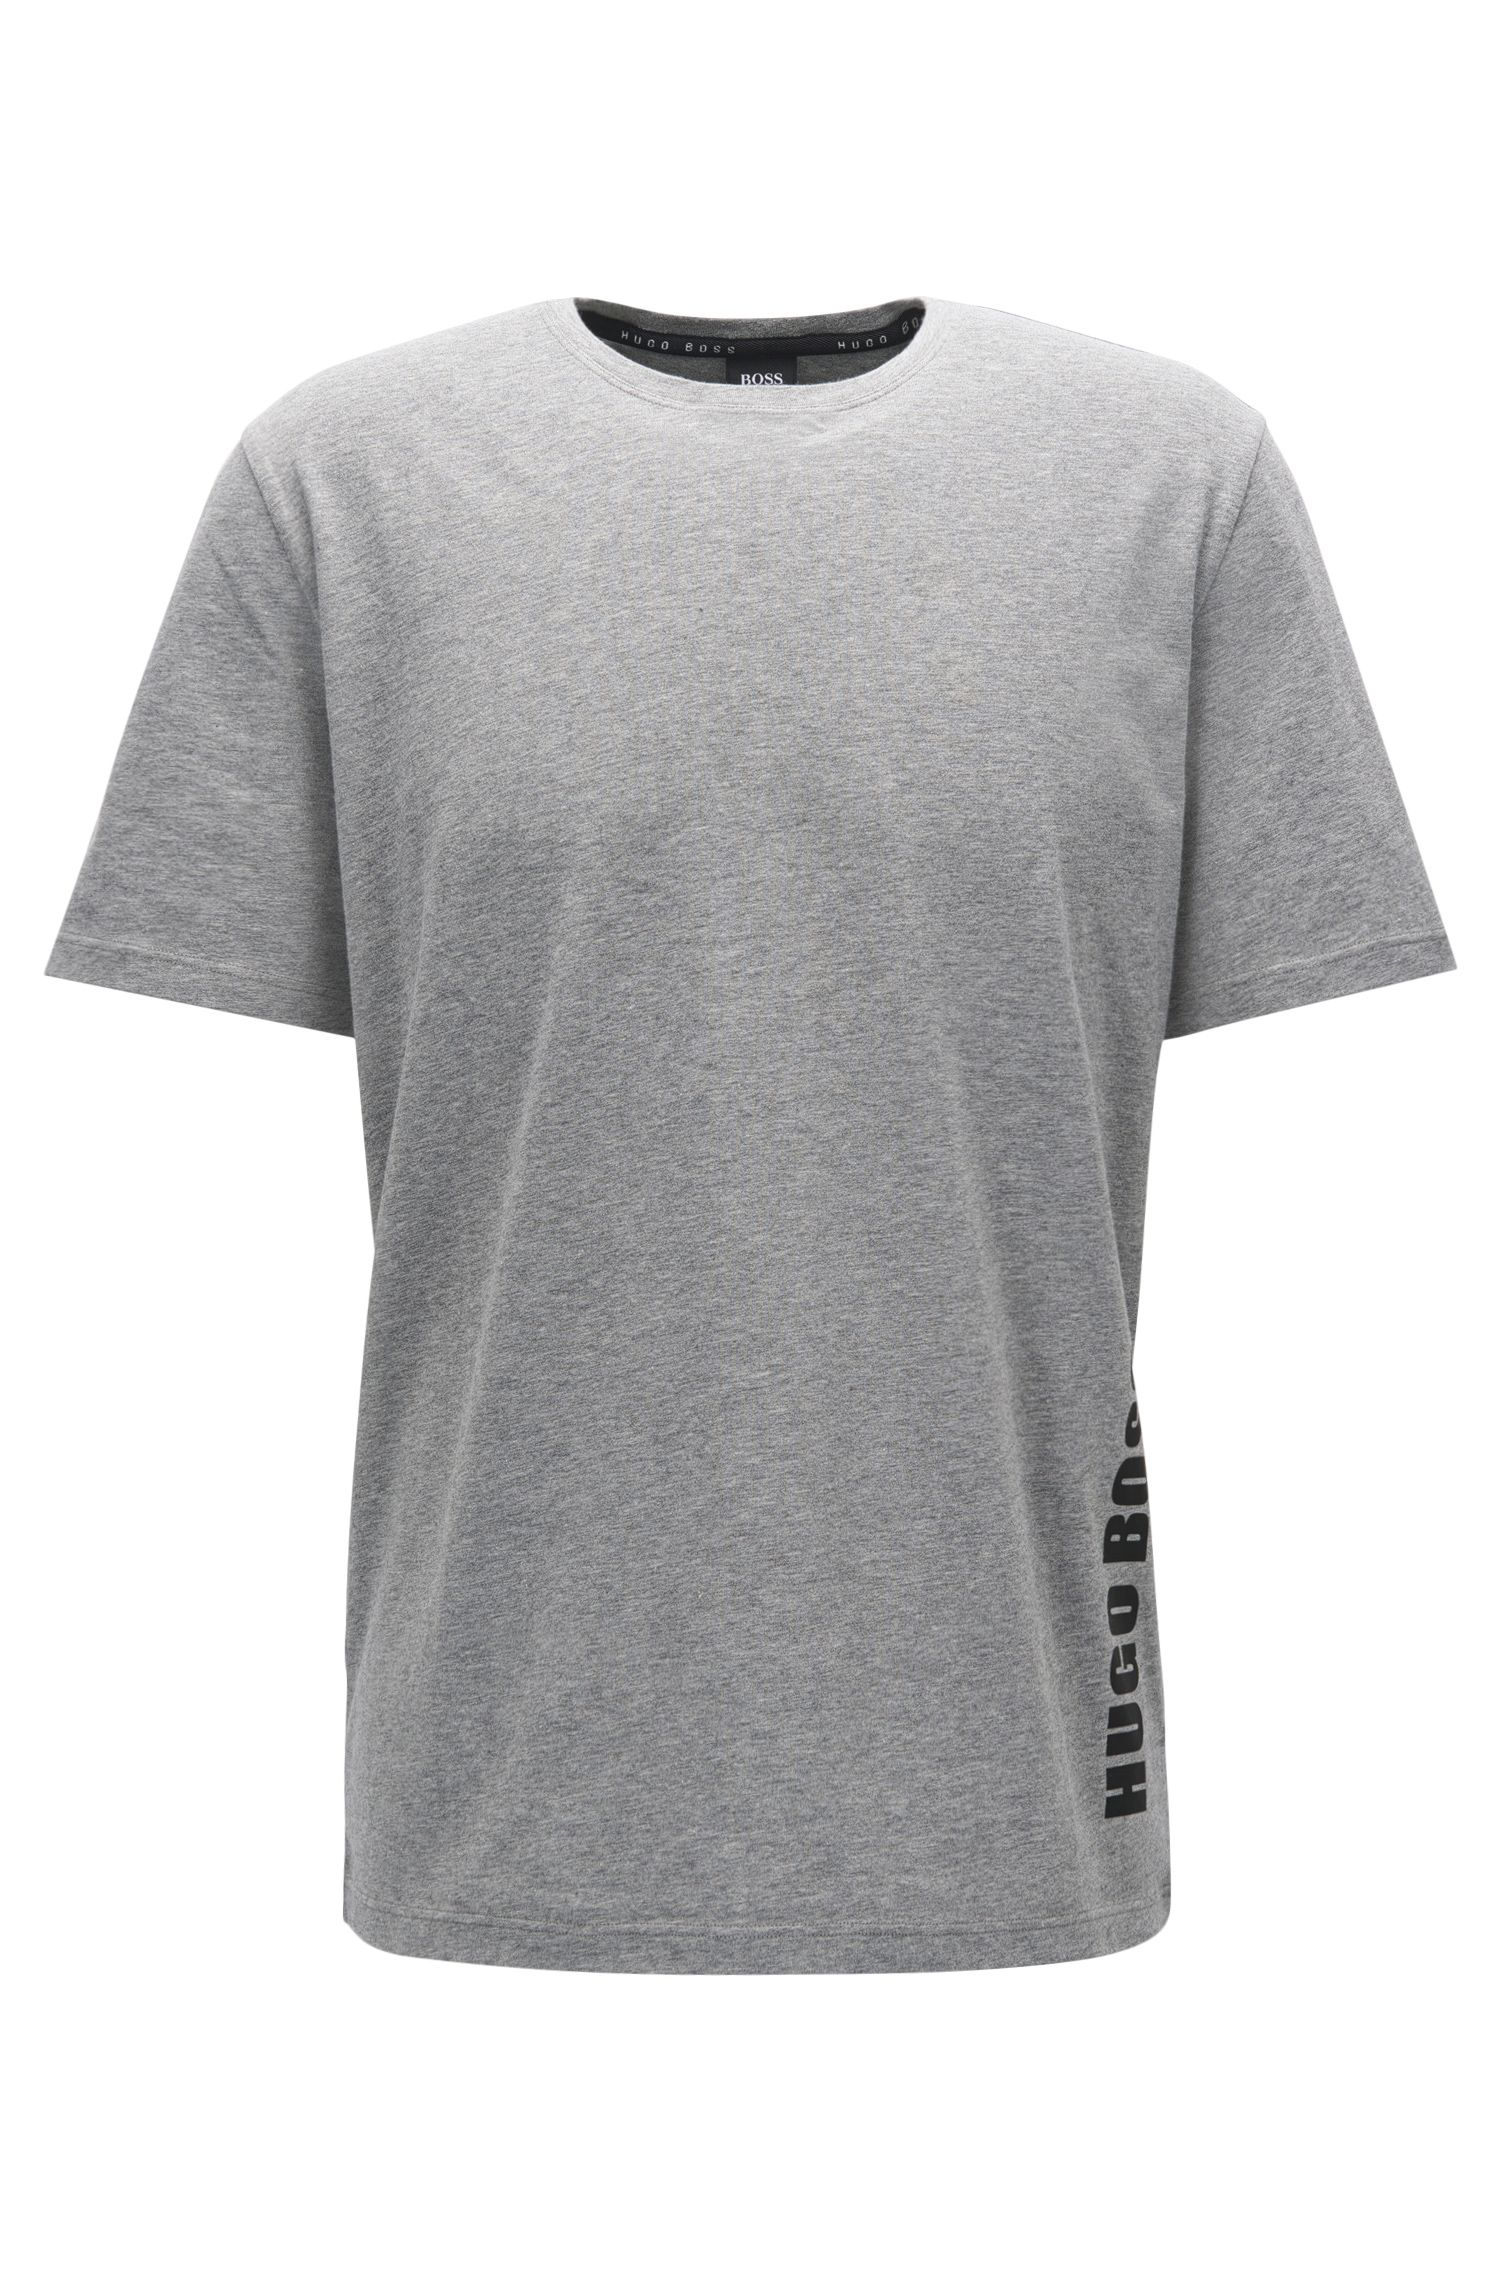 T-shirt regular fit per pigiama in jersey